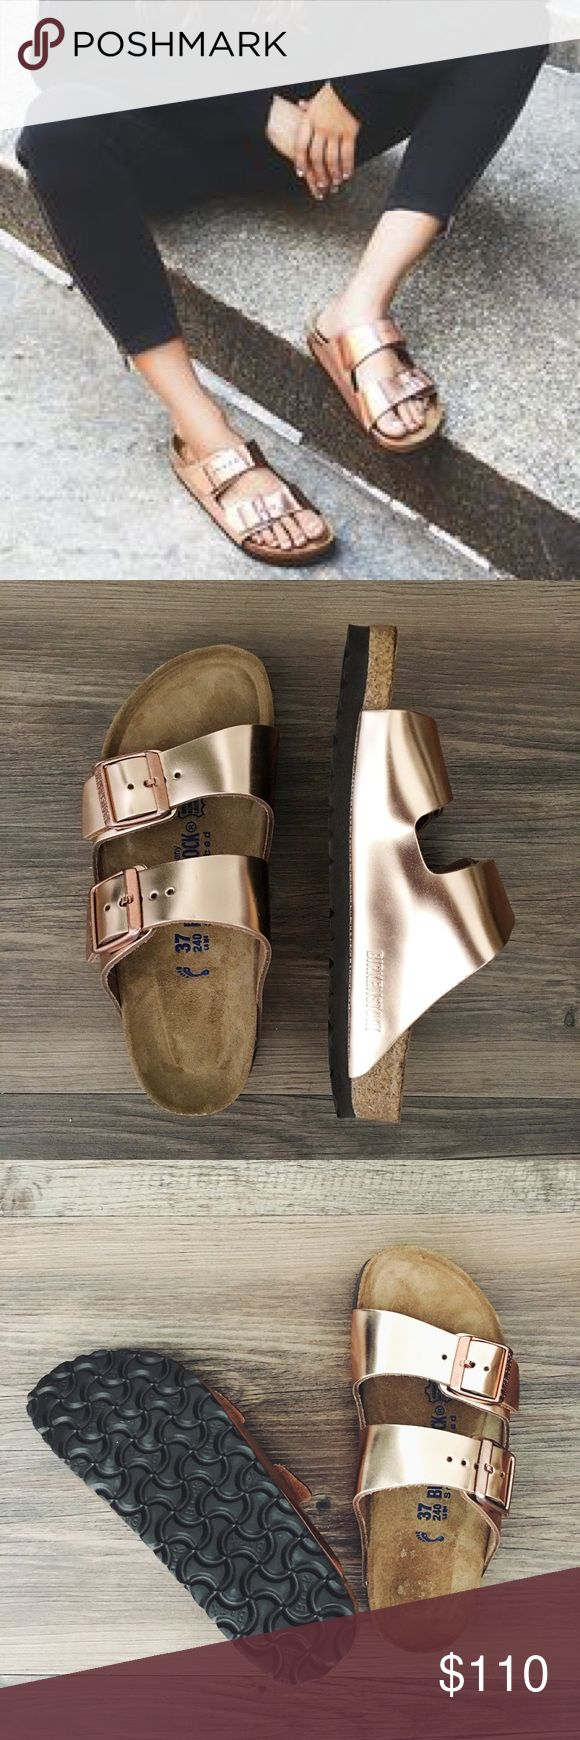 Rose gold Birkenstocks Classic Arizona fit in a GORGEOUS rose gold! Brand new with box (the box is missing the top FYI). A 37 Birk translates to a women's 6-6.5. Authentic; originally purchased at Nordstrom. Birkenstock Shoes